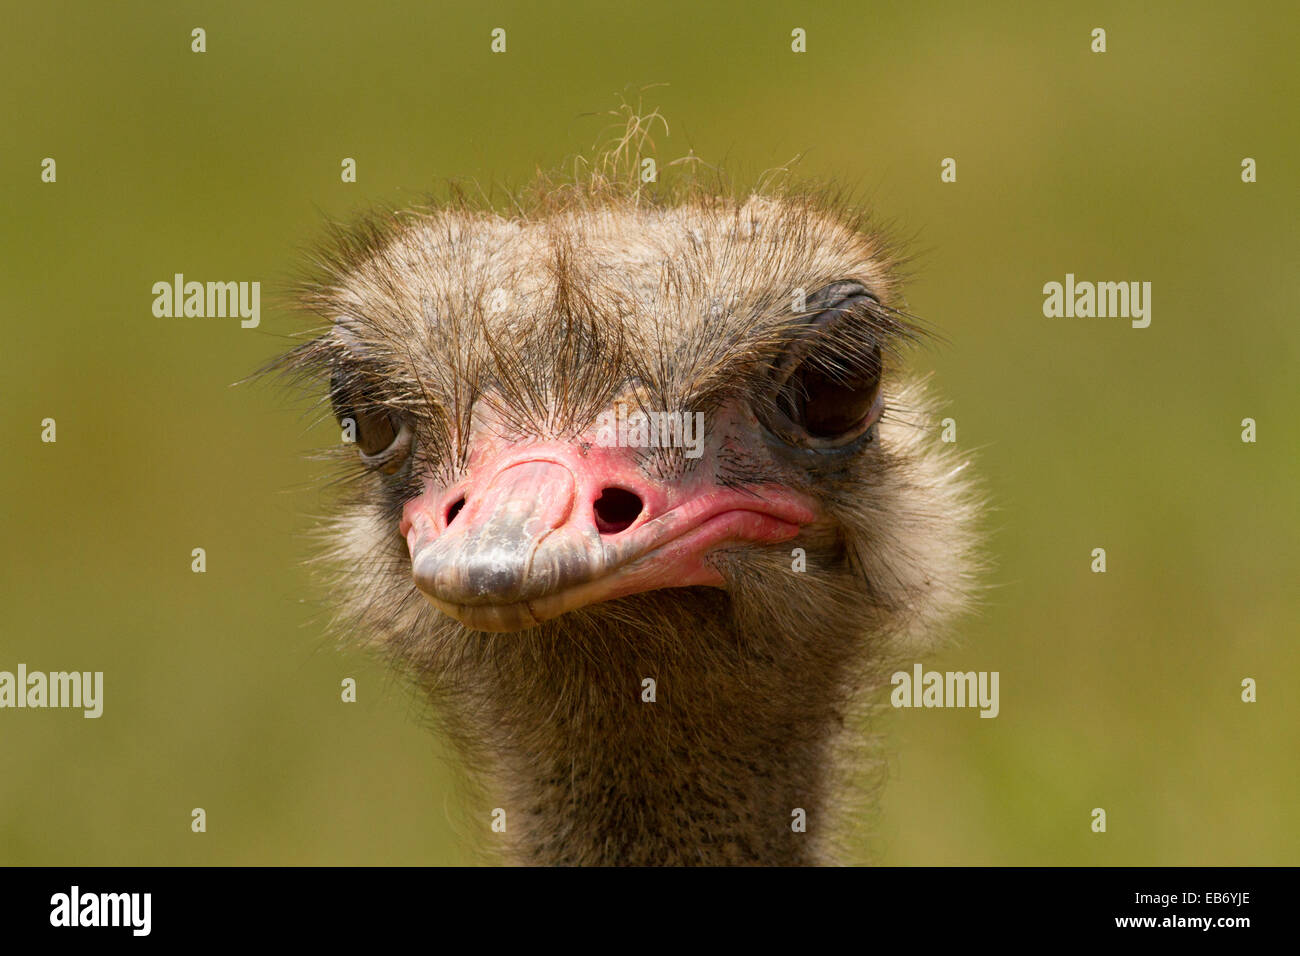 Ostrich head with space for captions. Plain background - Stock Image